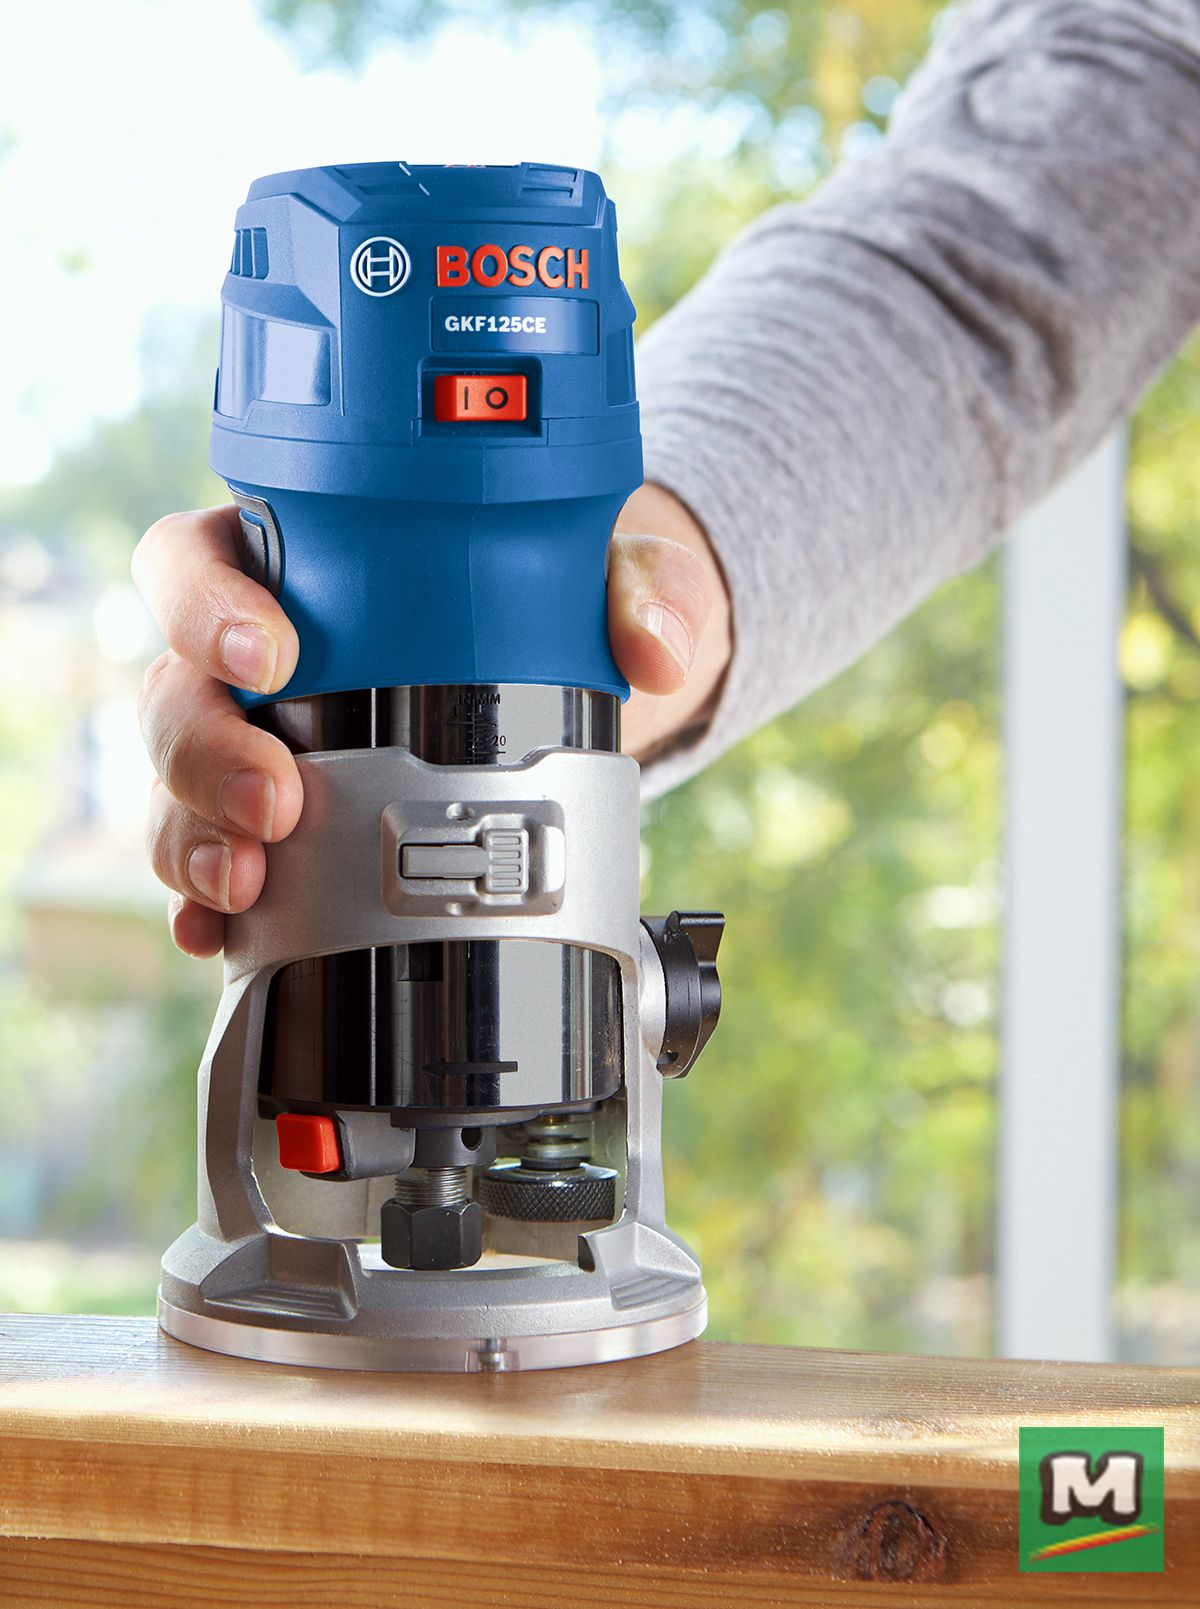 Bosch hand router the best router 2018 bosch pr20evsk wood router reviews greentooth Images